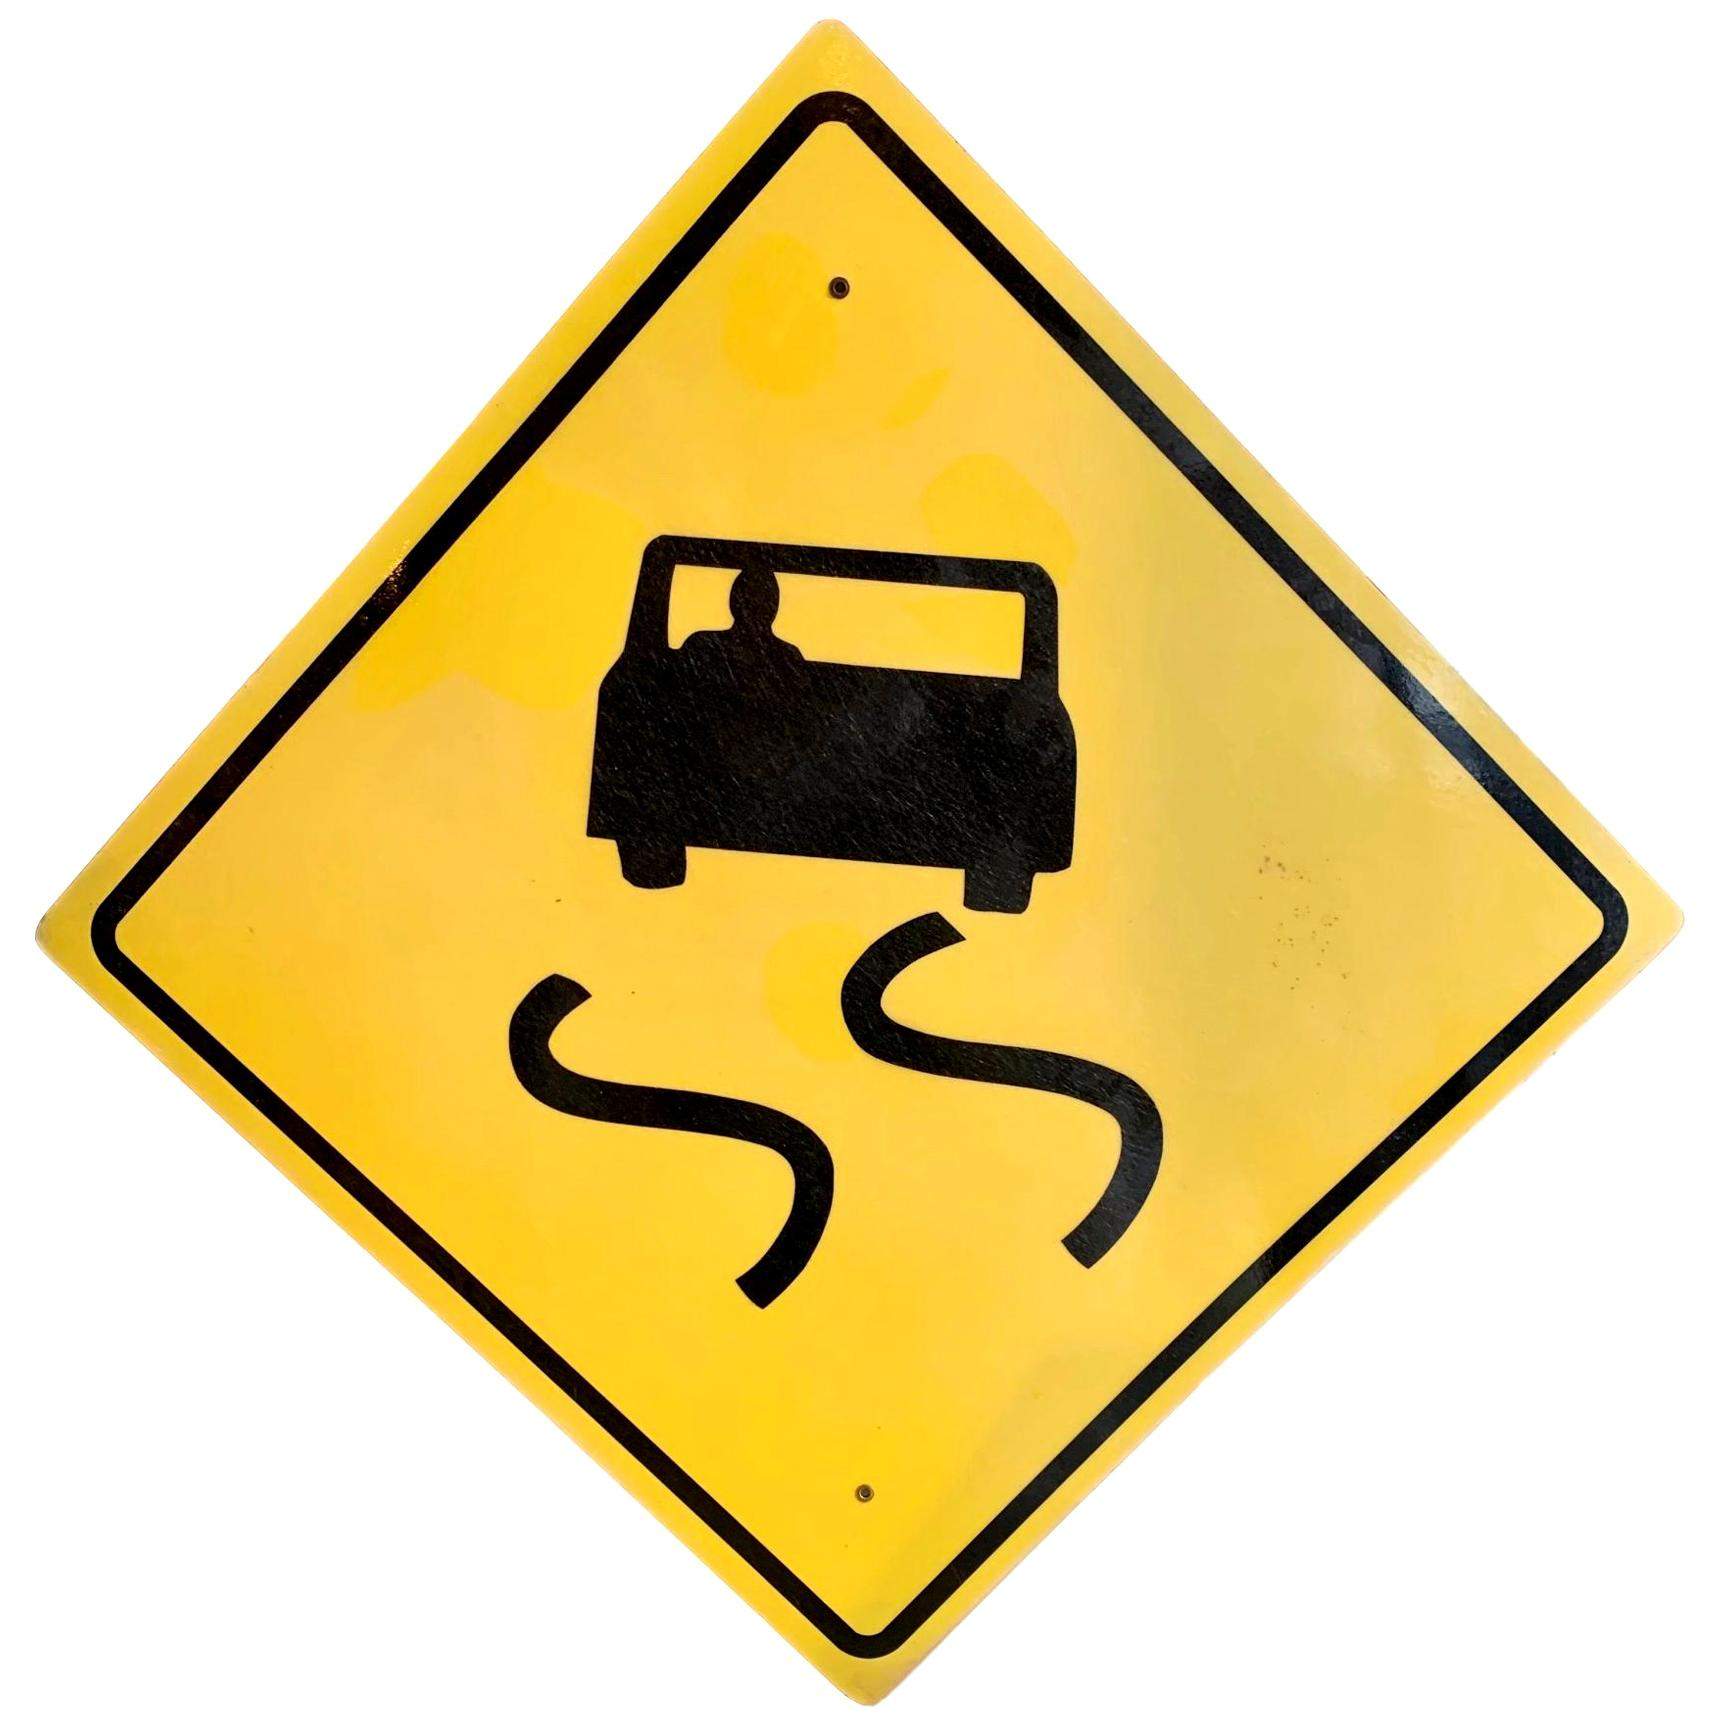 Los Angeles Slippery Road Highway Sign